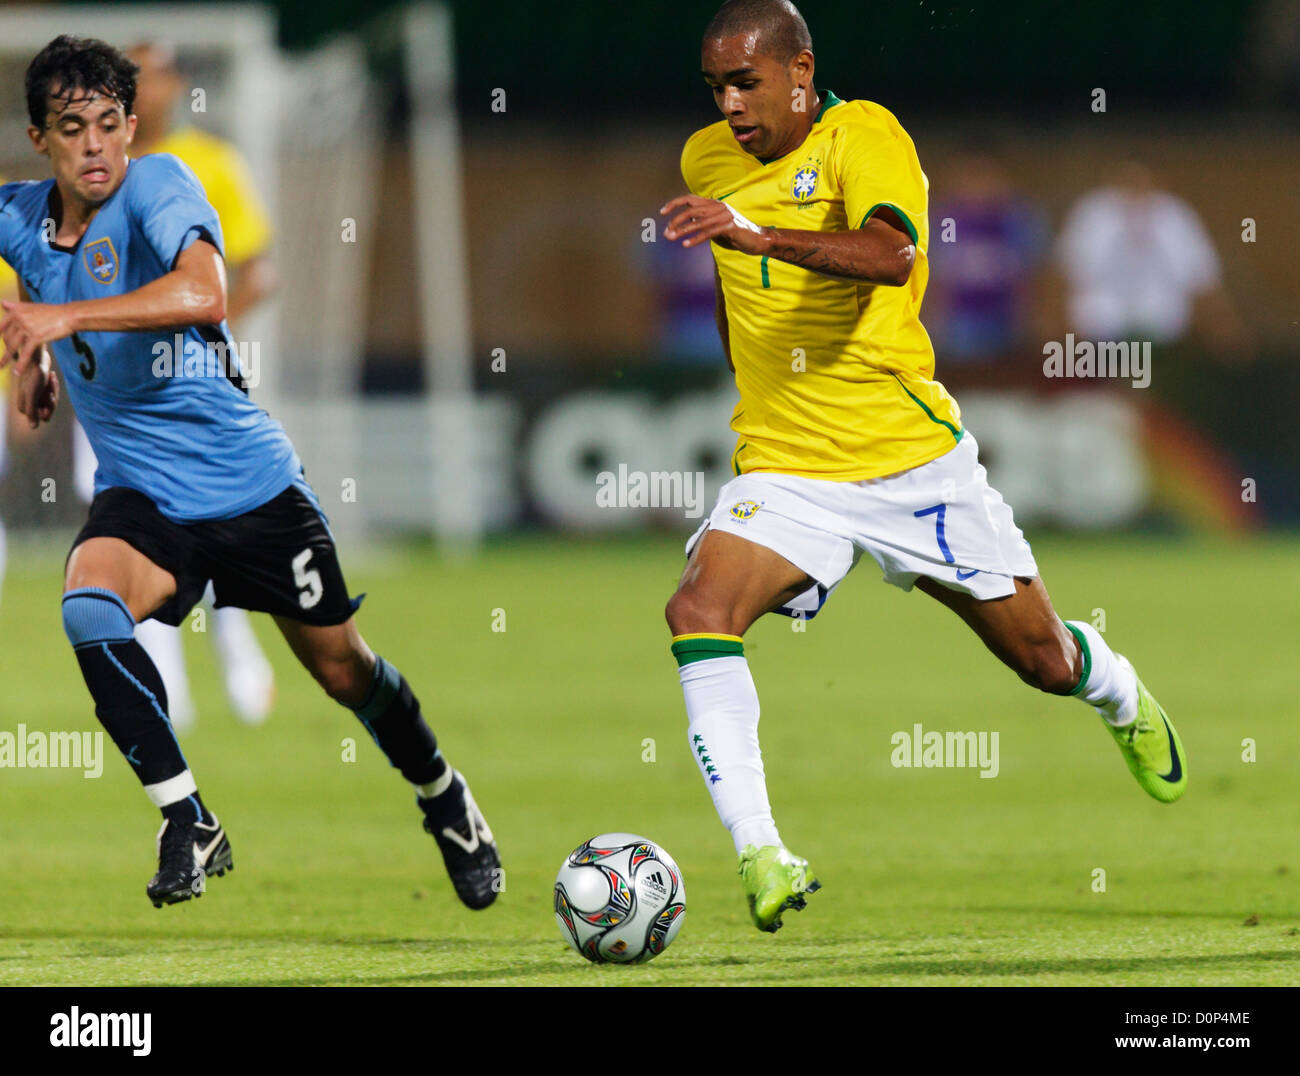 Alex Teixeira of Brazil on the against Uruguay during the